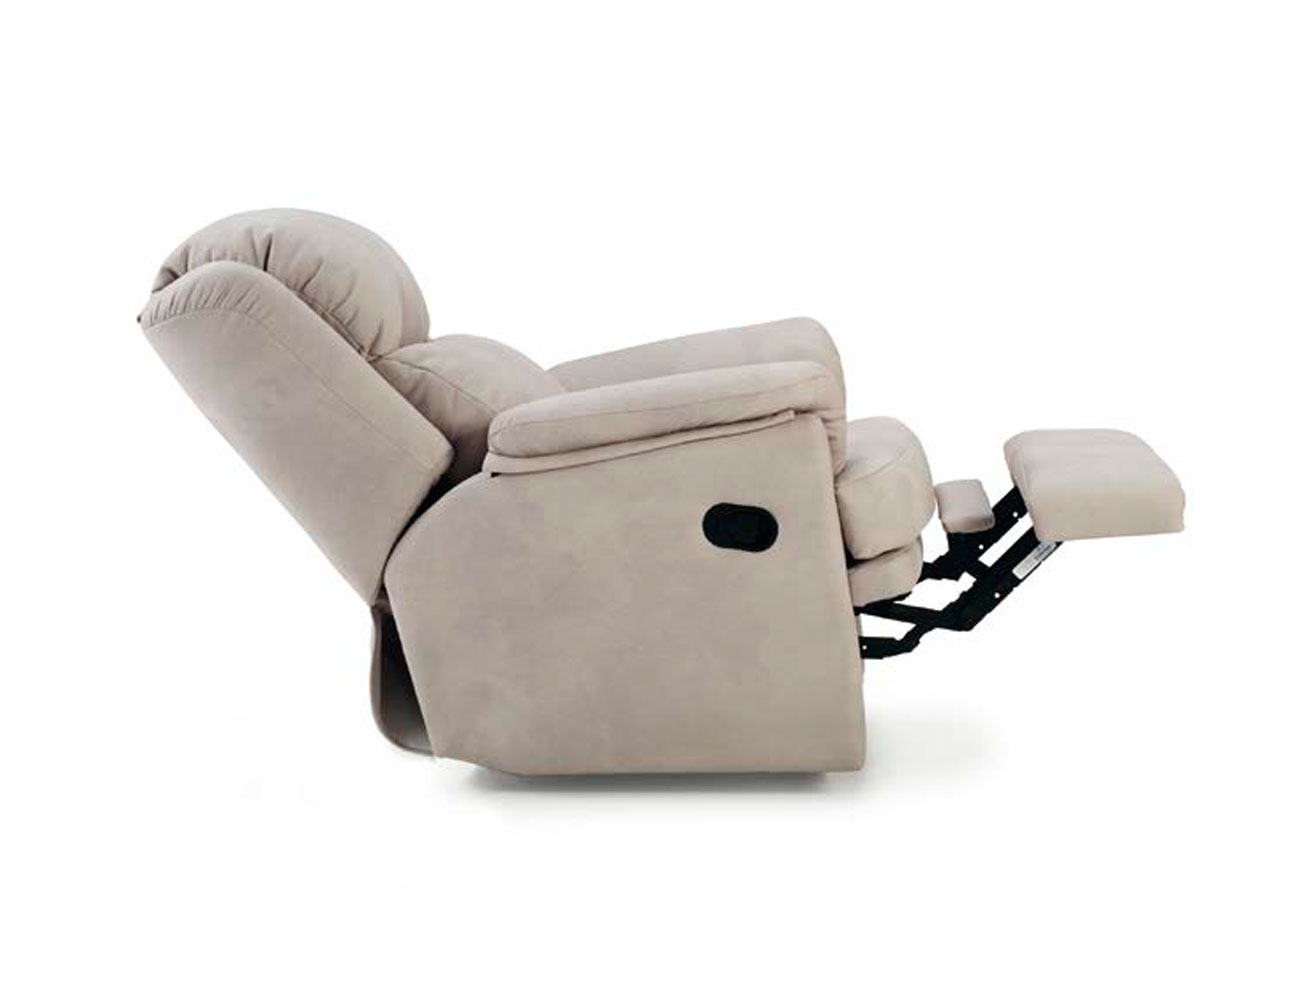 Sillon relax manual palanca esther 119